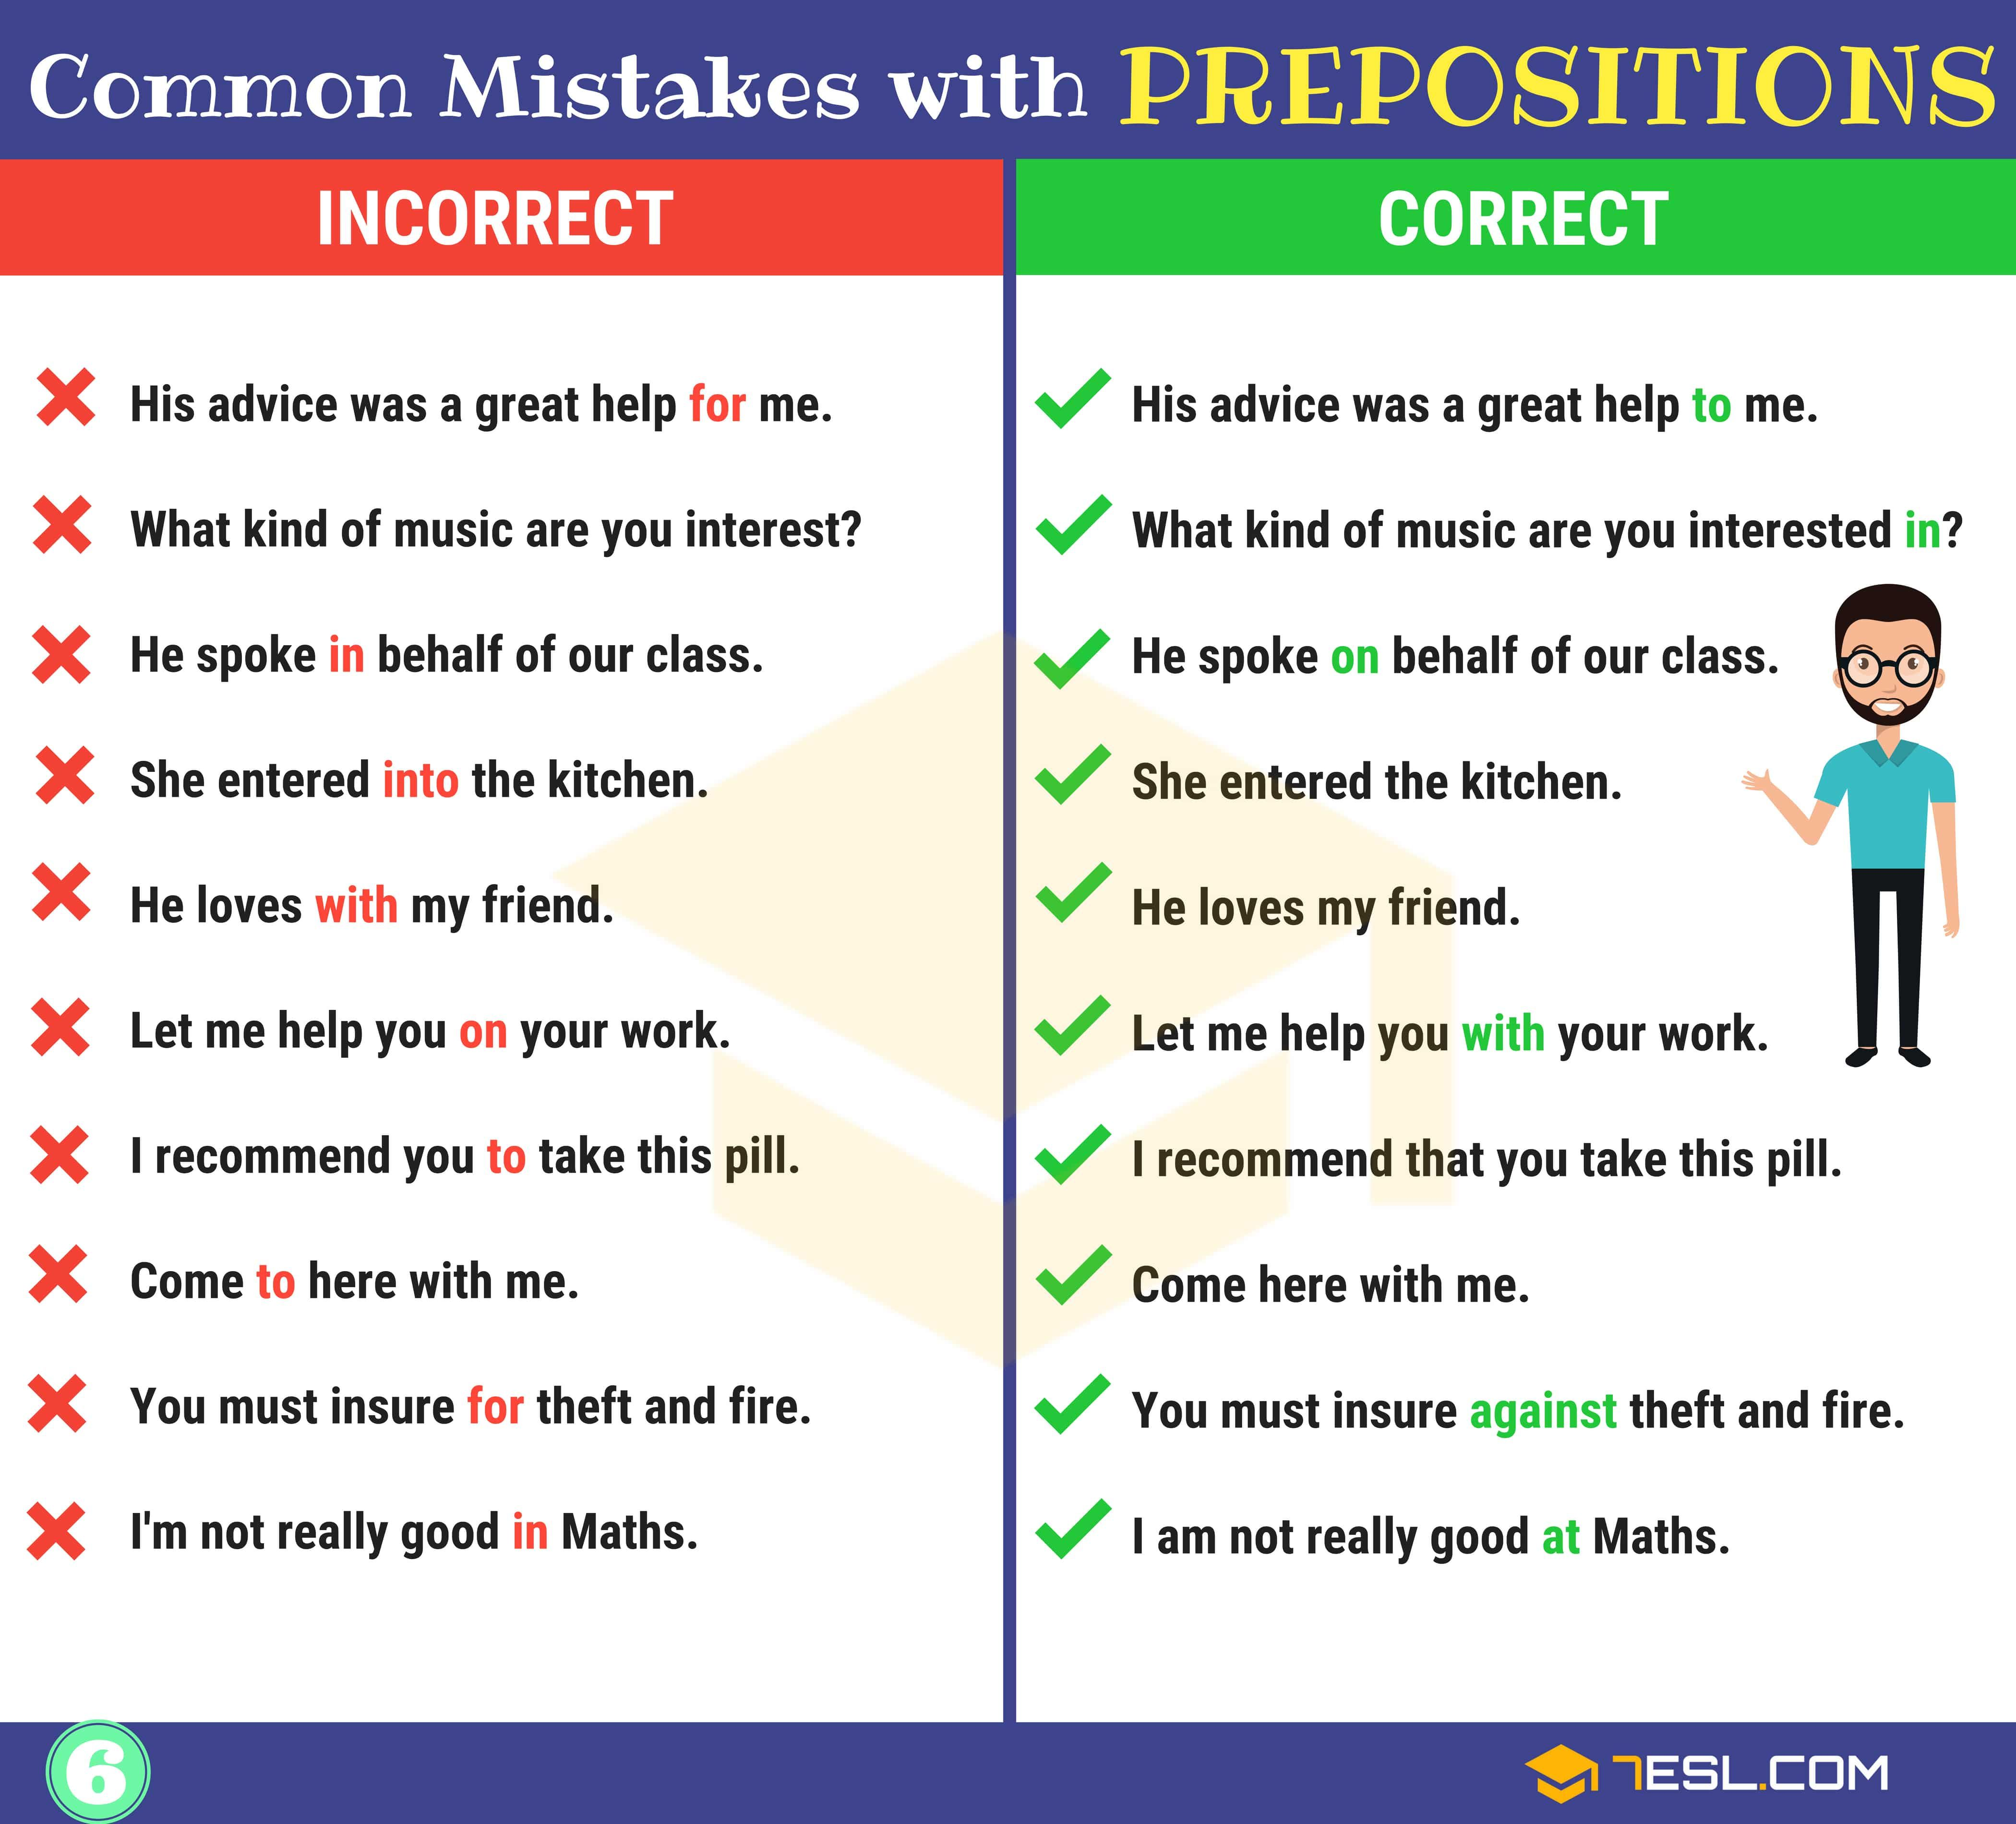 Preposition Errors 130 Common Mistakes With Prepositions 7esl Learn English English Prepositions Prepositions